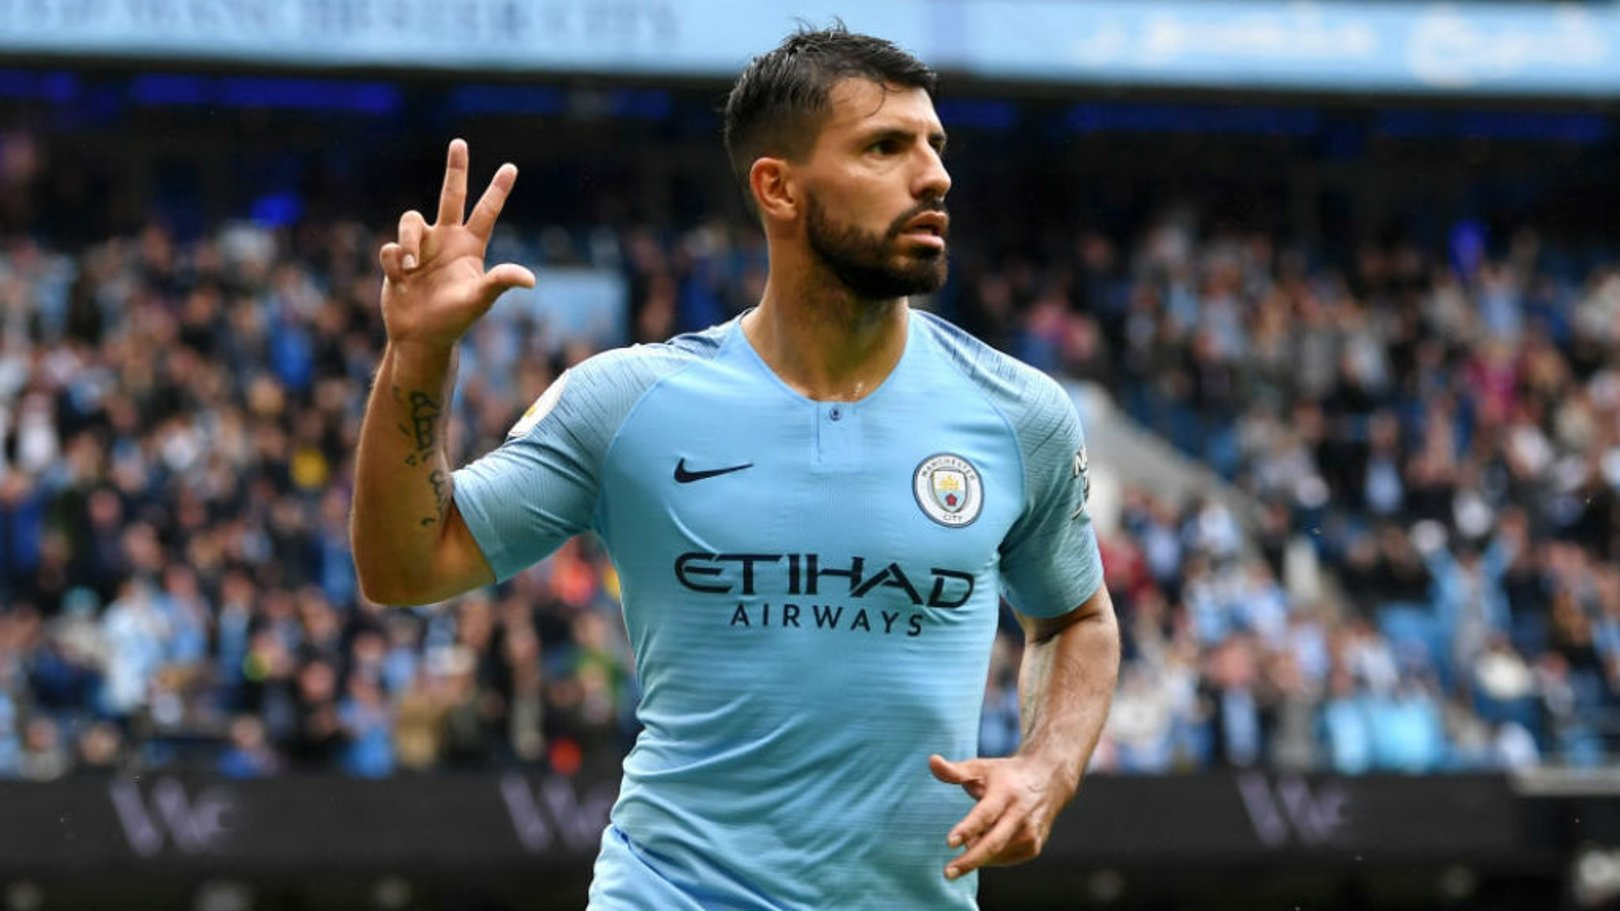 ACTION STATIONS: Sergio Aguero trained ahead of Manchester City's Champions League Group F opener against Lyon